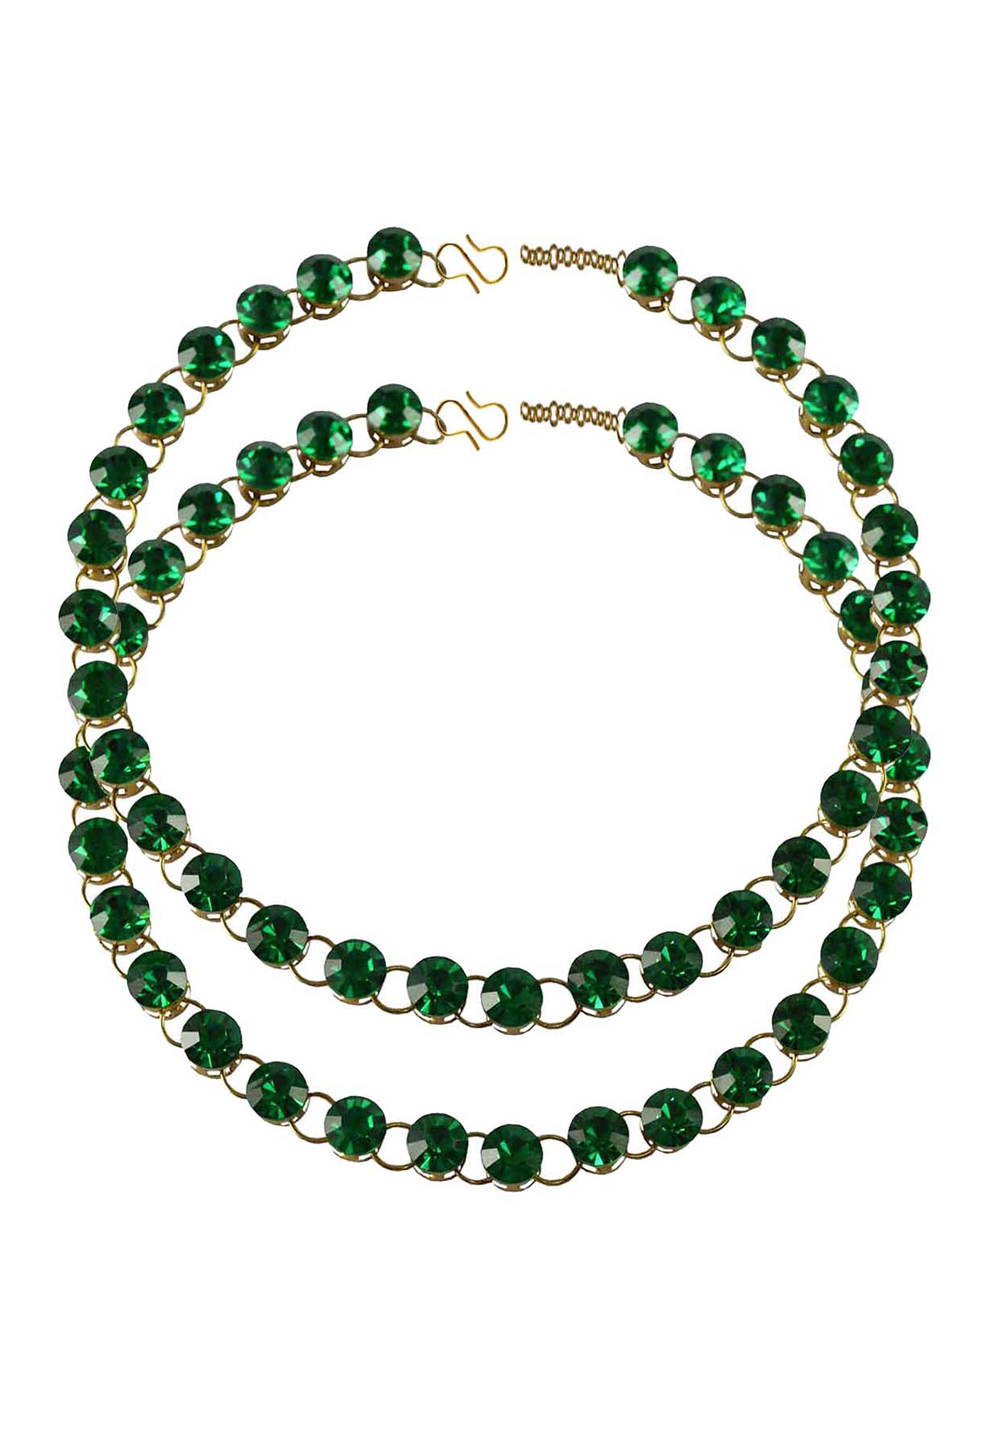 Green Brass Gold Plated Anklets 171270